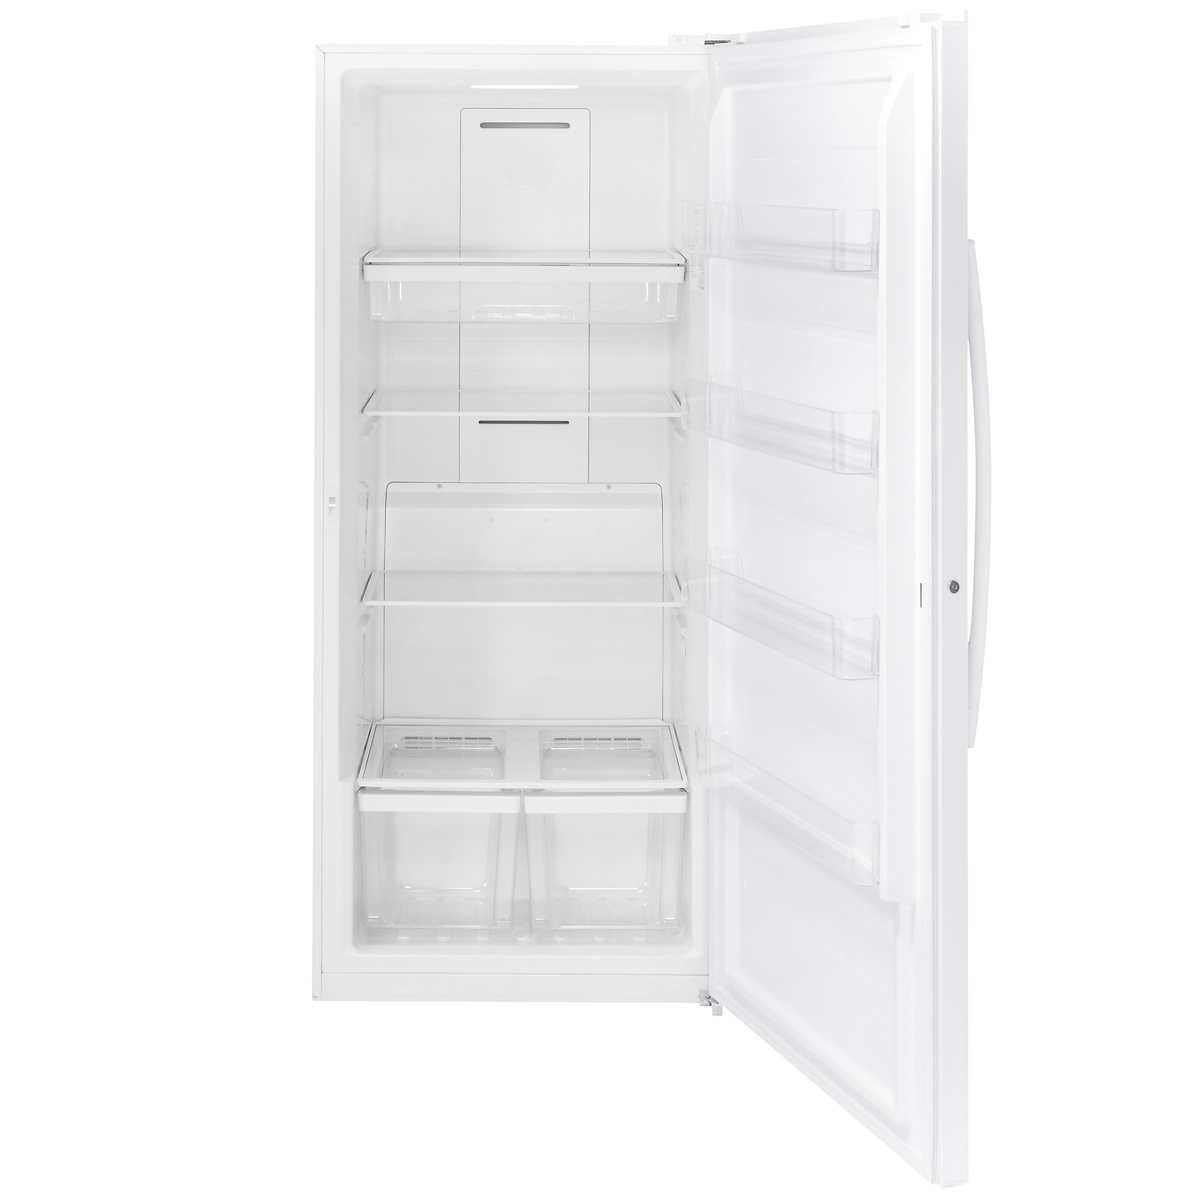 Pin by Phannie Y on Kitchens in 2020 Upright freezer